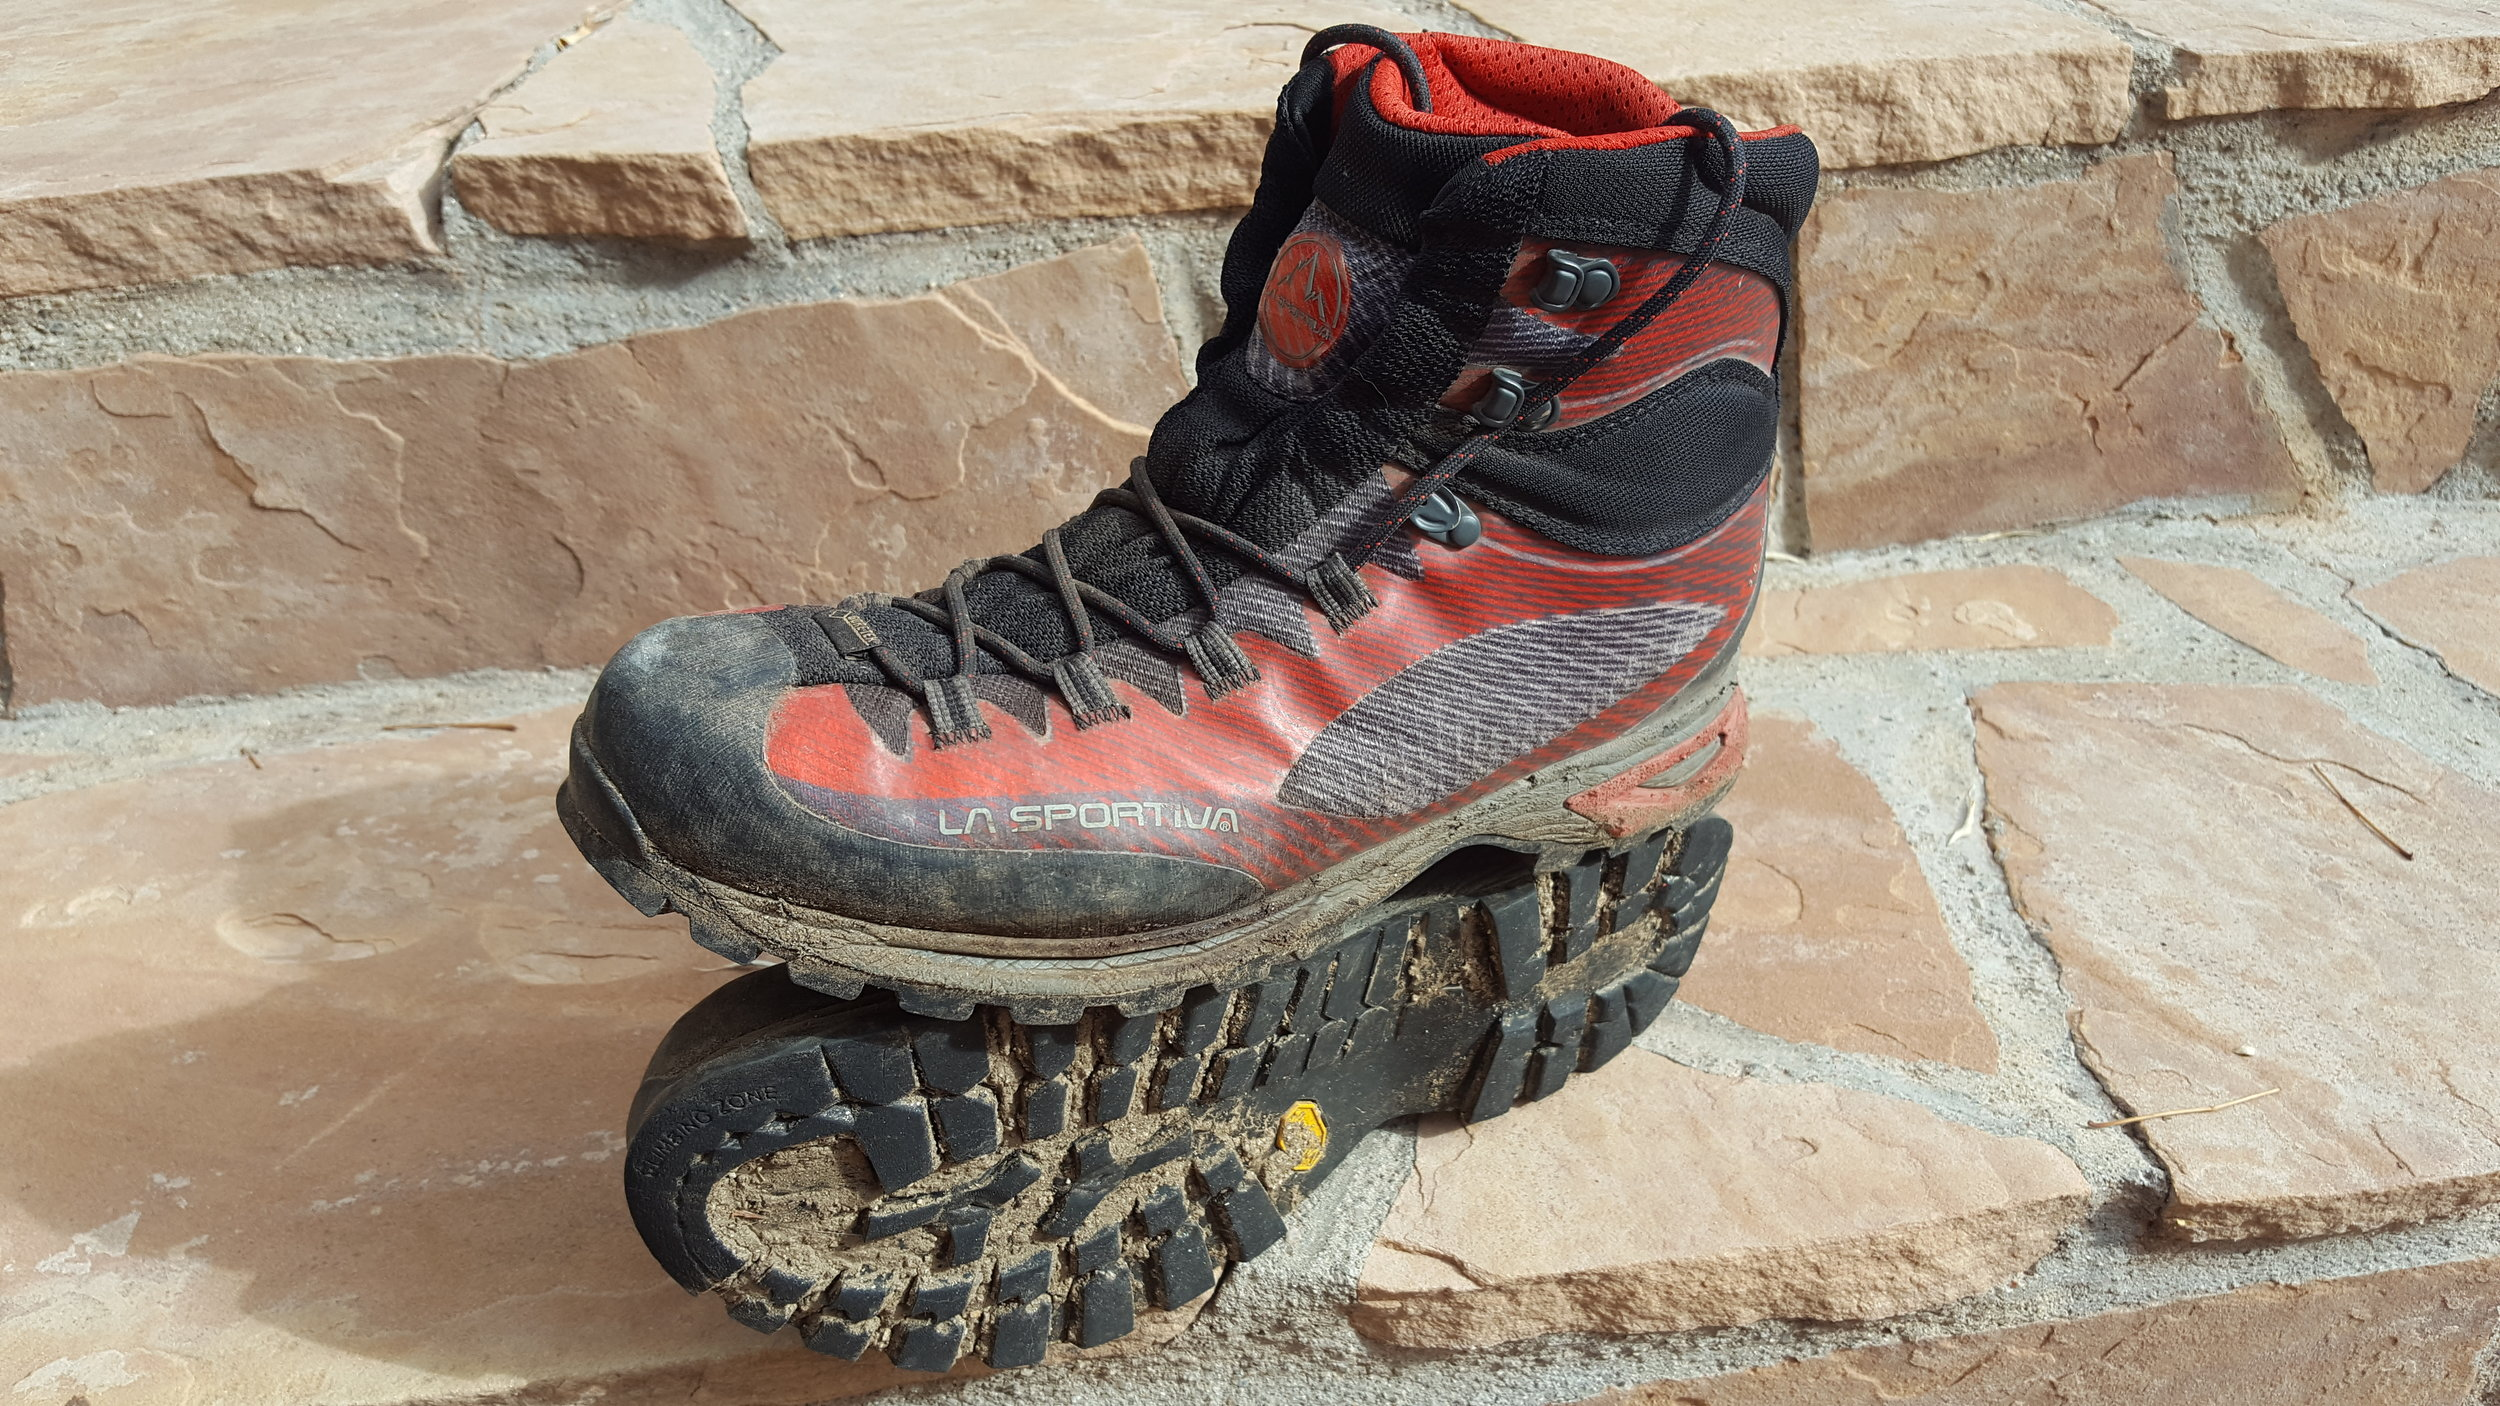 La Sportiva Trango, after 11 months they are still going strong.